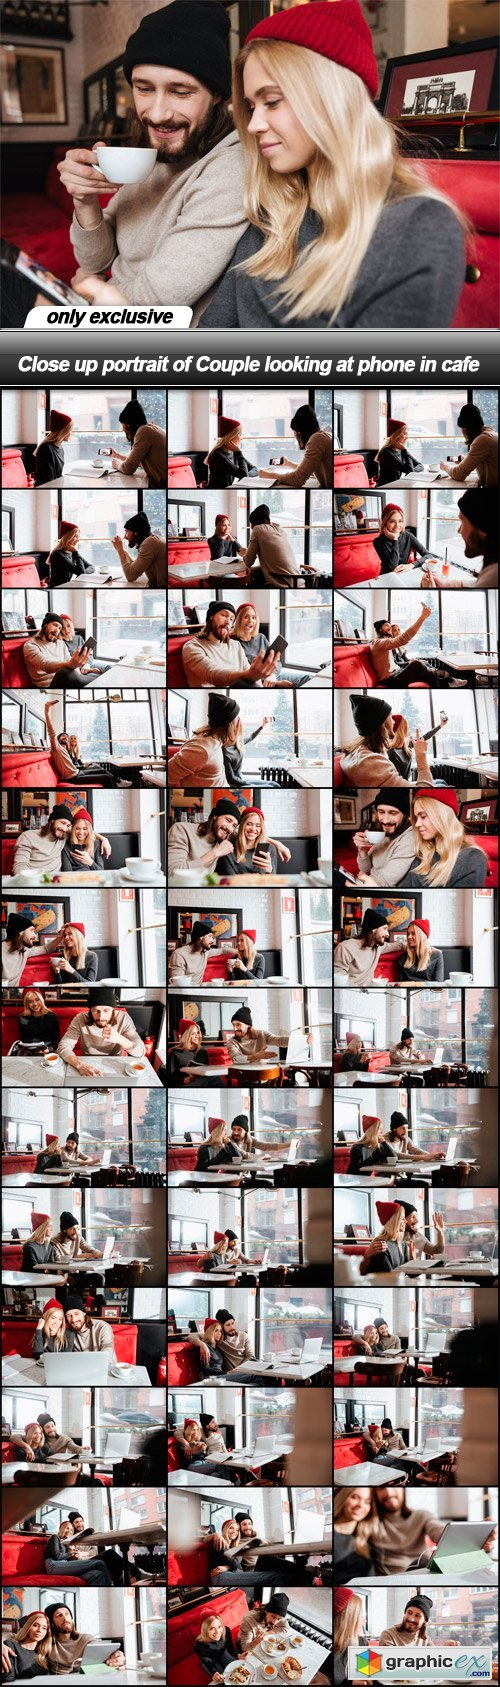 Close up portrait of Couple looking at phone in cafe - 39 EPS